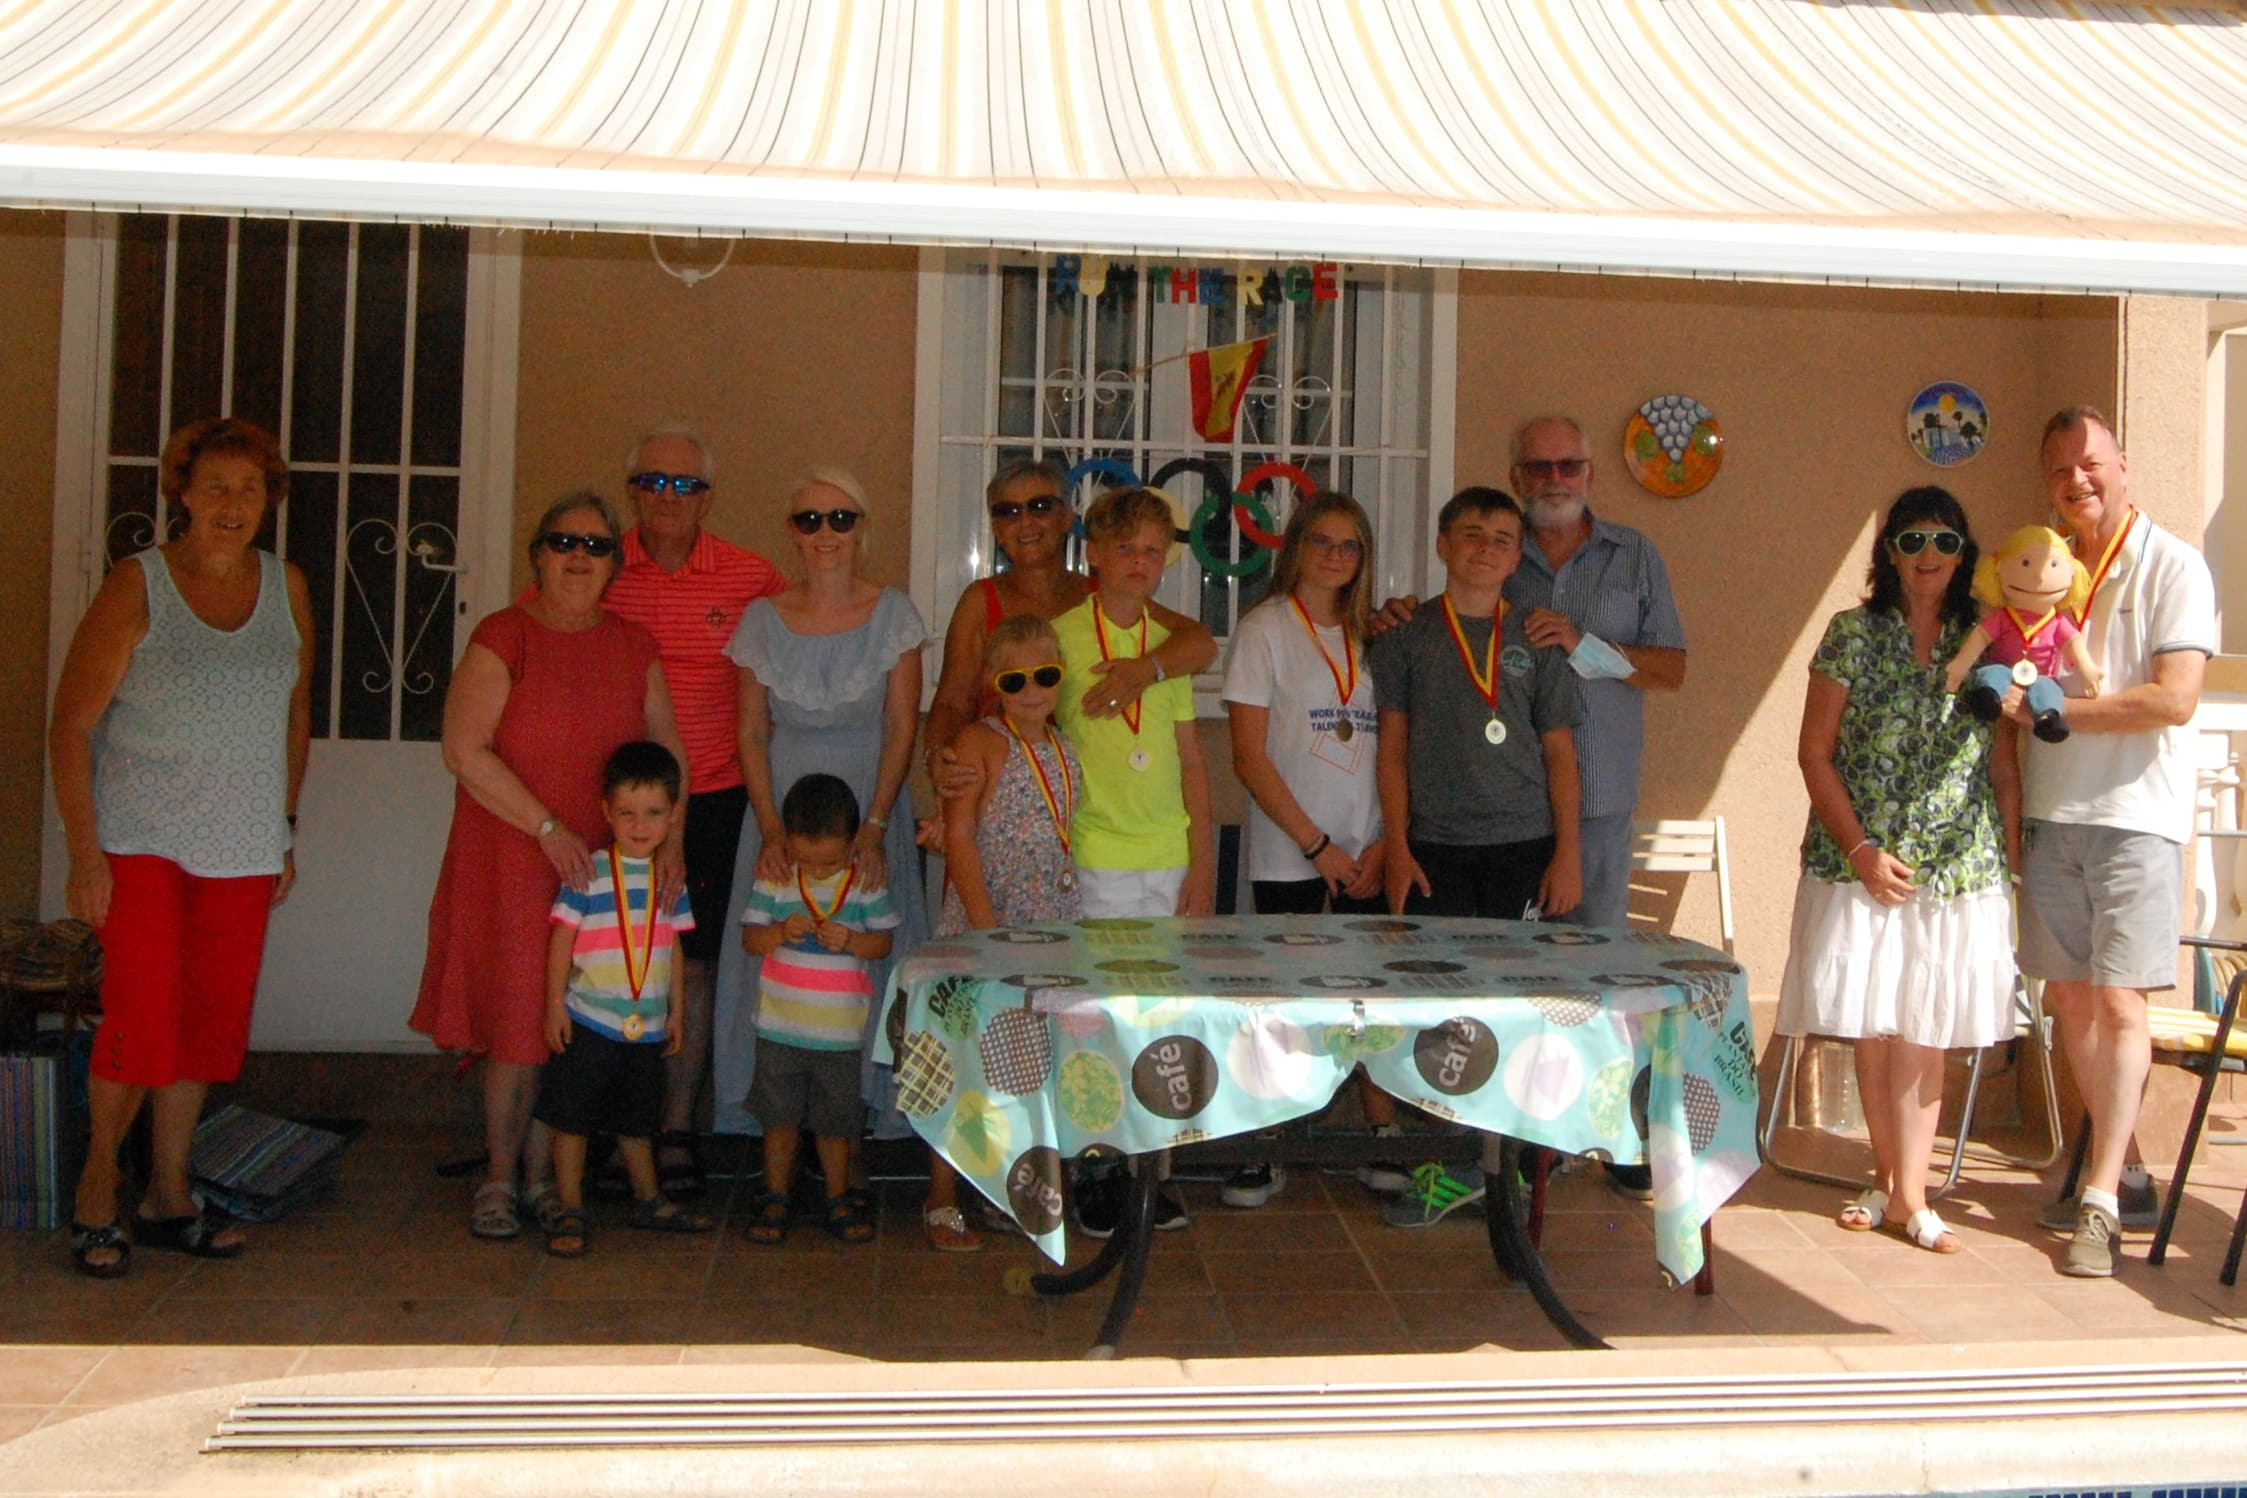 Steve and Irene-Maria opened their garden in the Punta Prima area to welcome two groups of children weekly